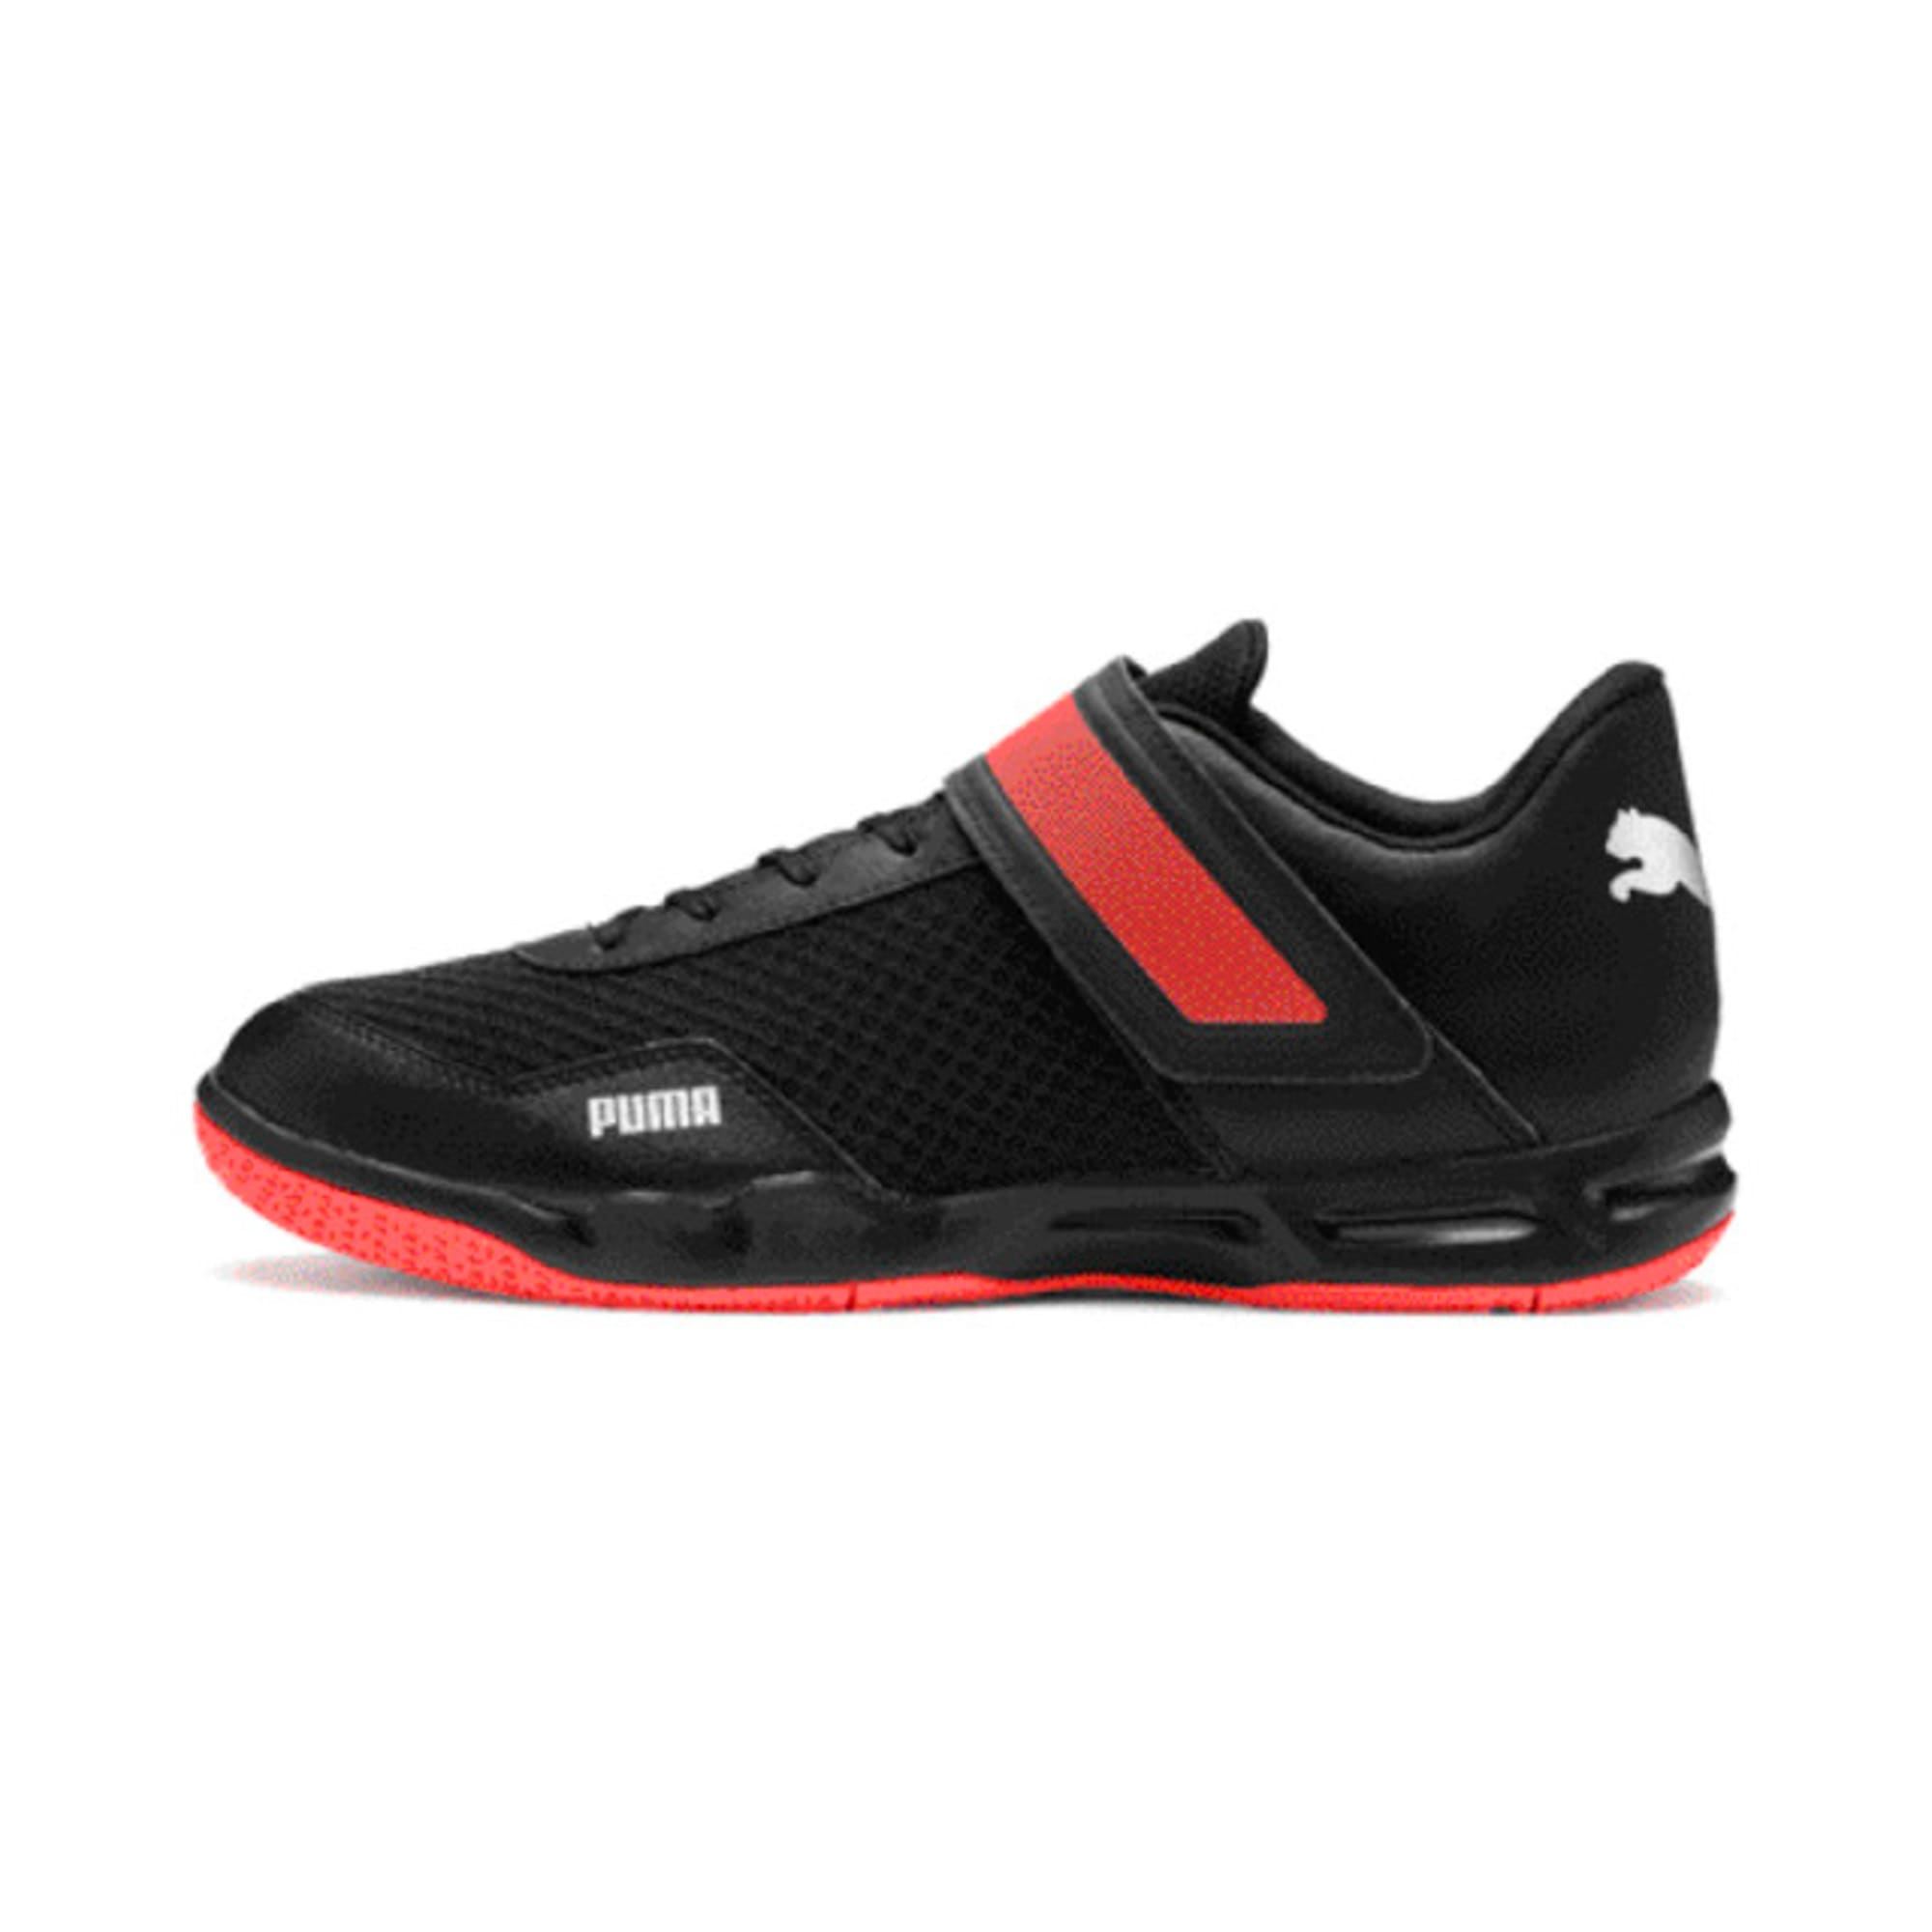 Thumbnail 1 of Rise XT 4 Men's Indoor Sports Trainers, Puma Black-Silver-Nrgy Red, medium-IND